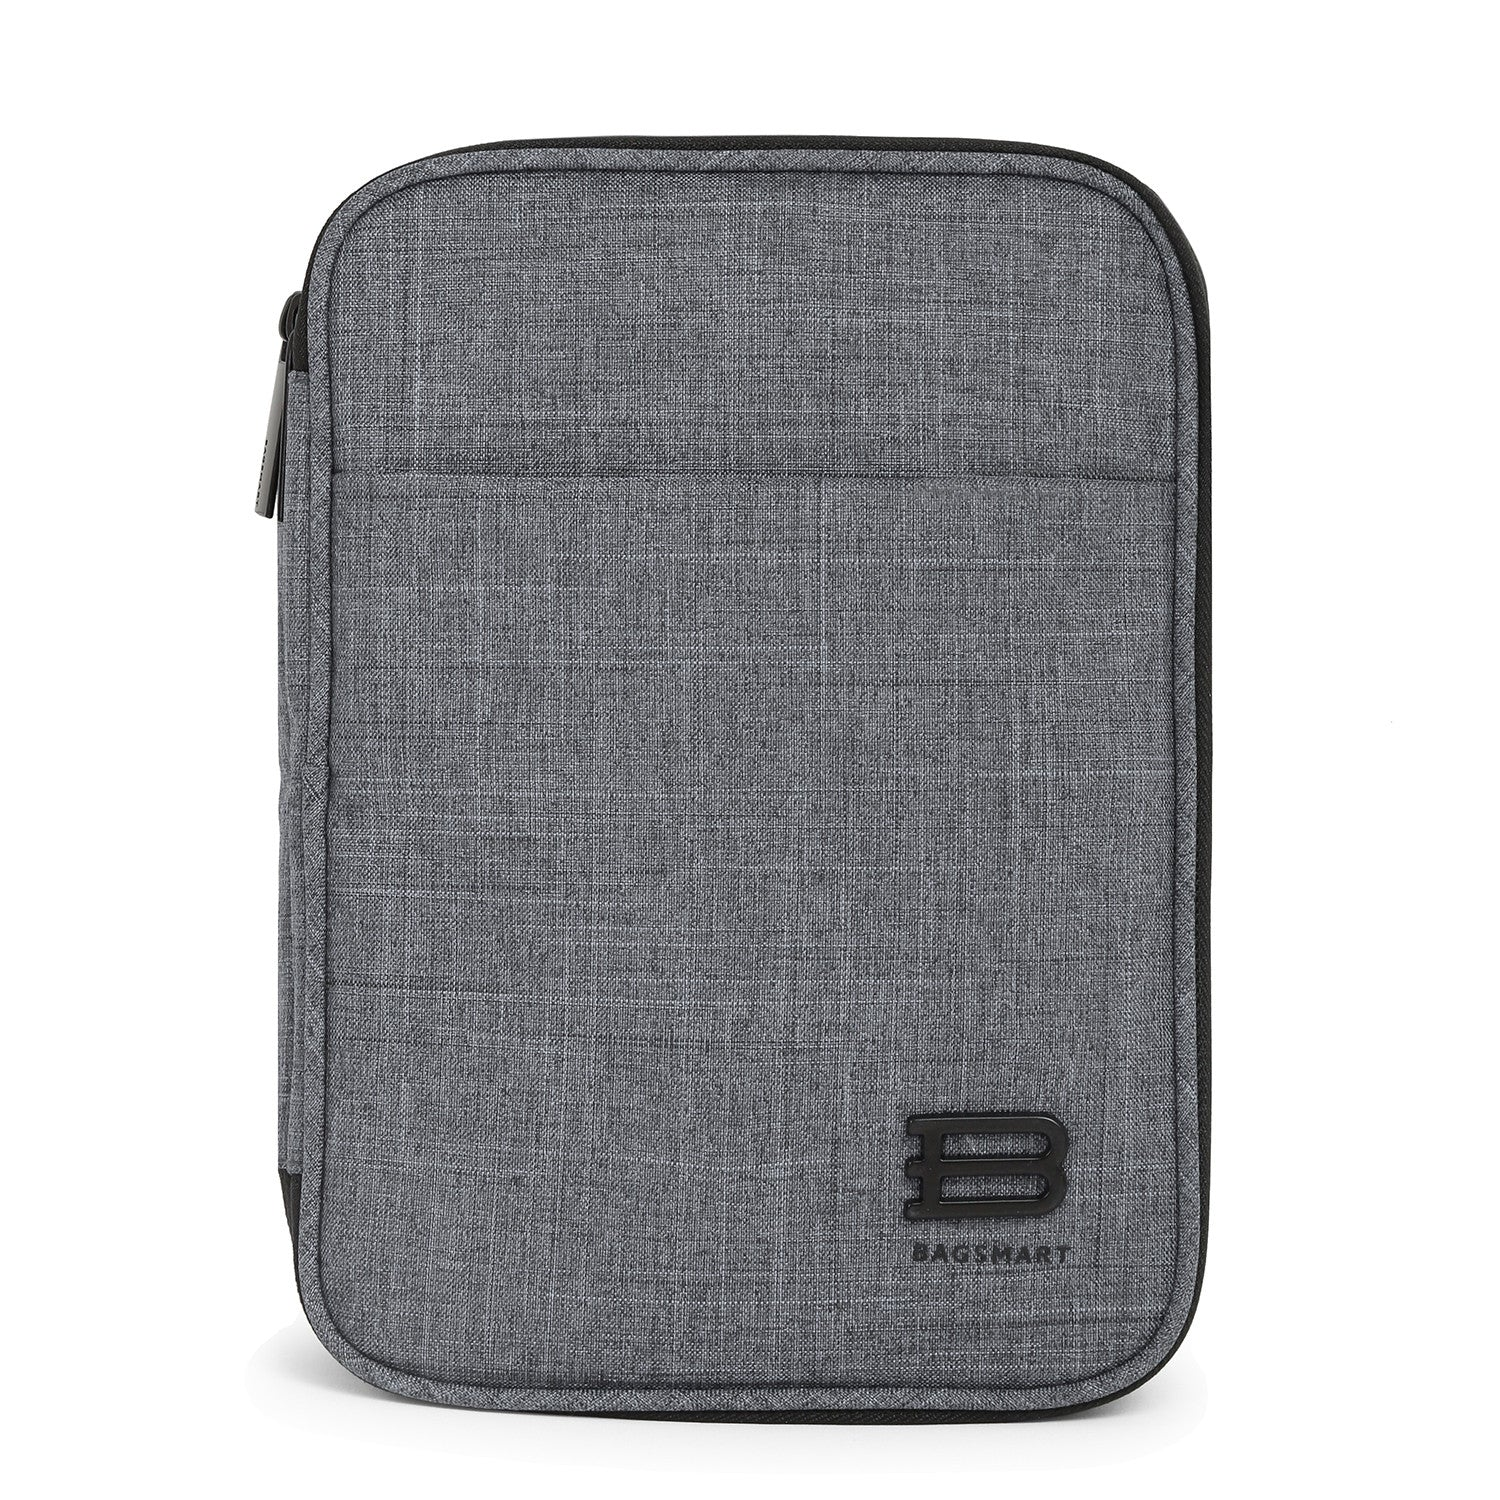 "The BAGSMART 3-layer Cable Organizer Bag for 9.7"" iPad - I Have Wanderlust"